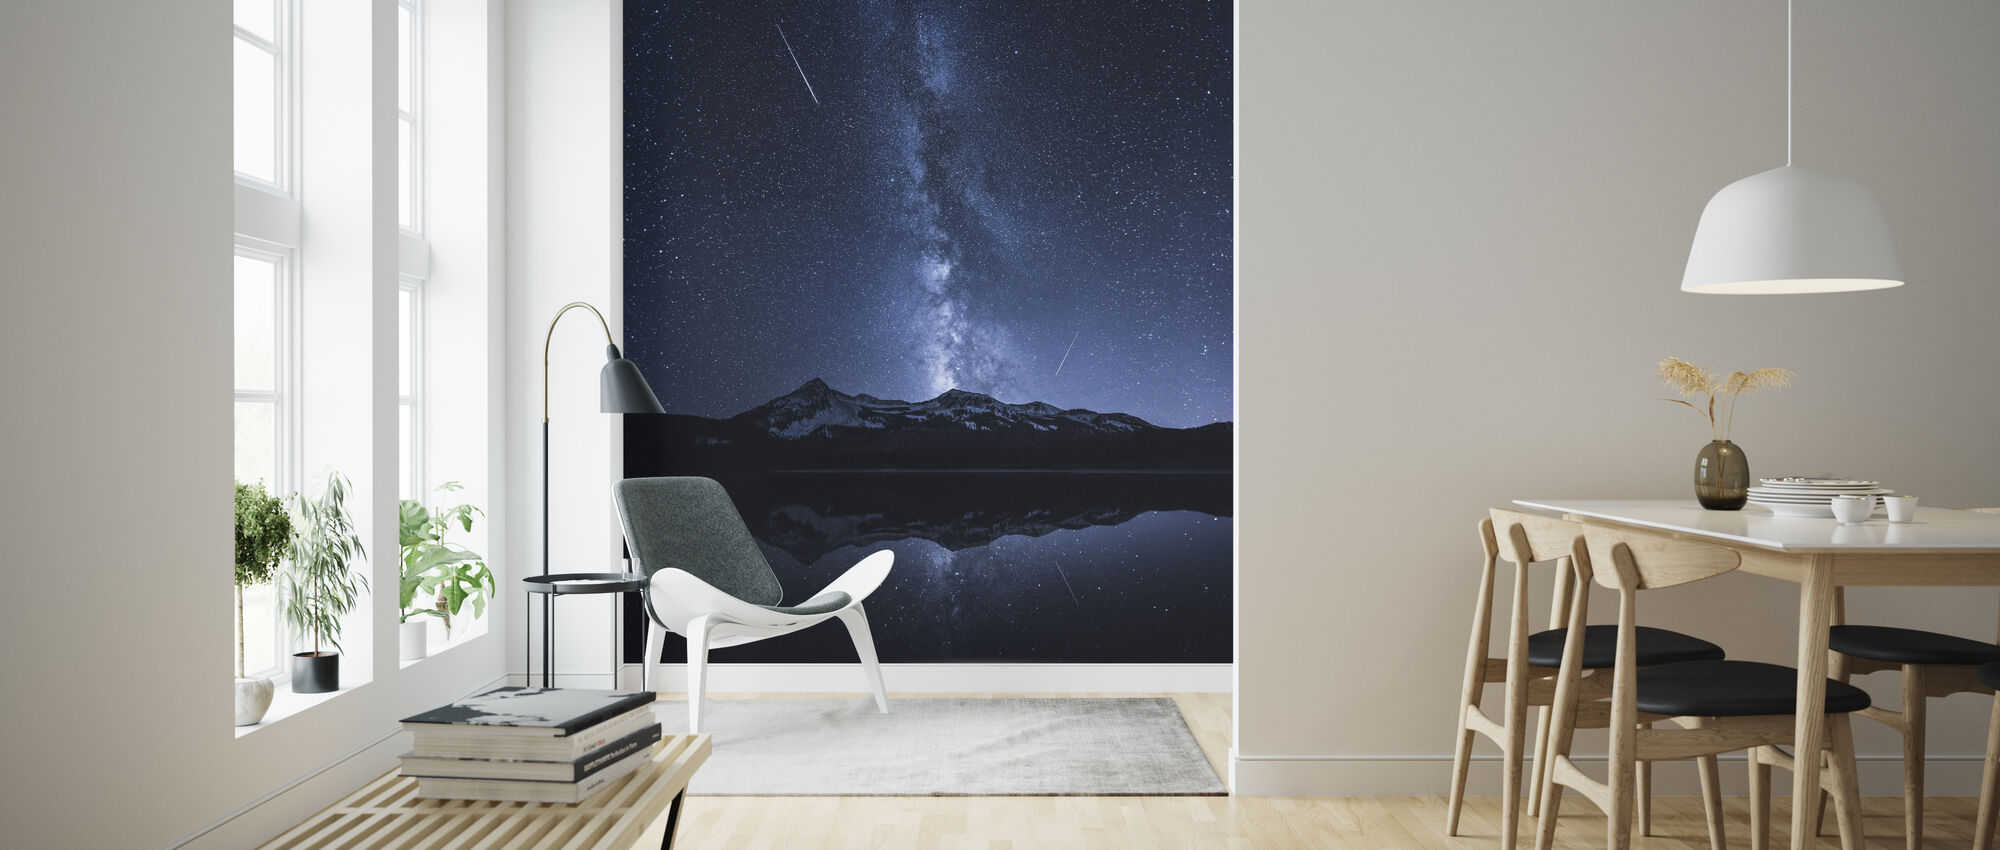 Galaxies Reflection - Wallpaper - Living Room